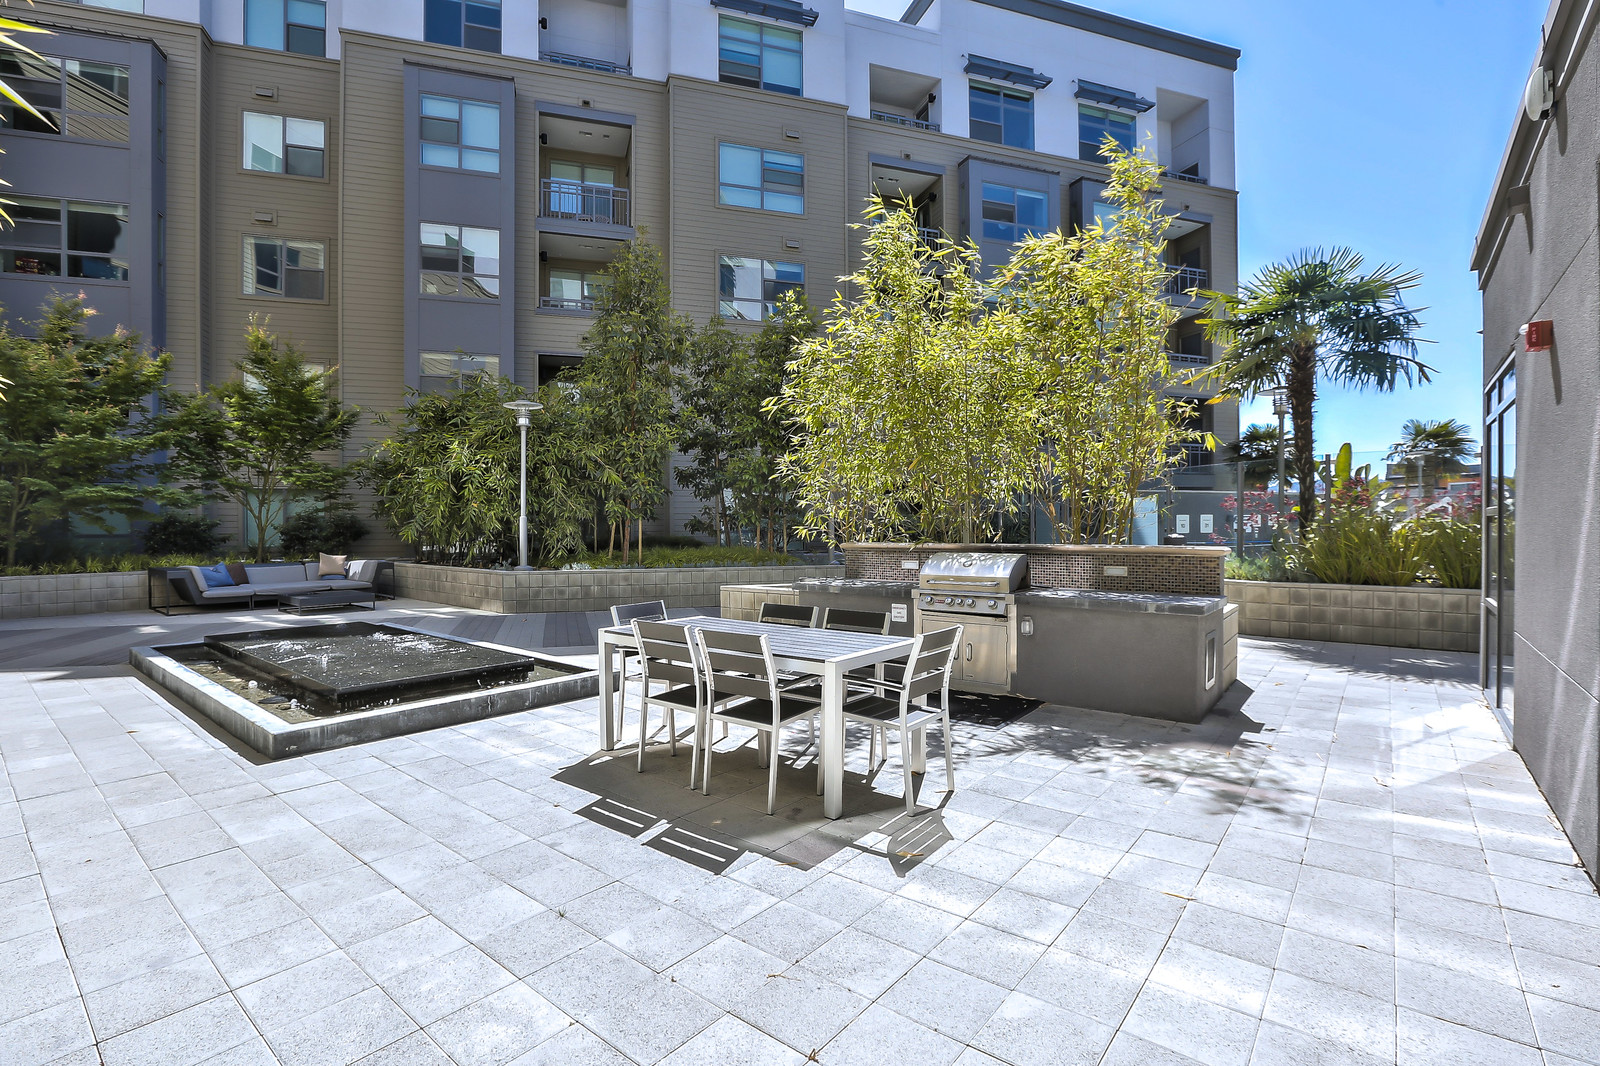 Courtyard at Franklin 299 Apartments